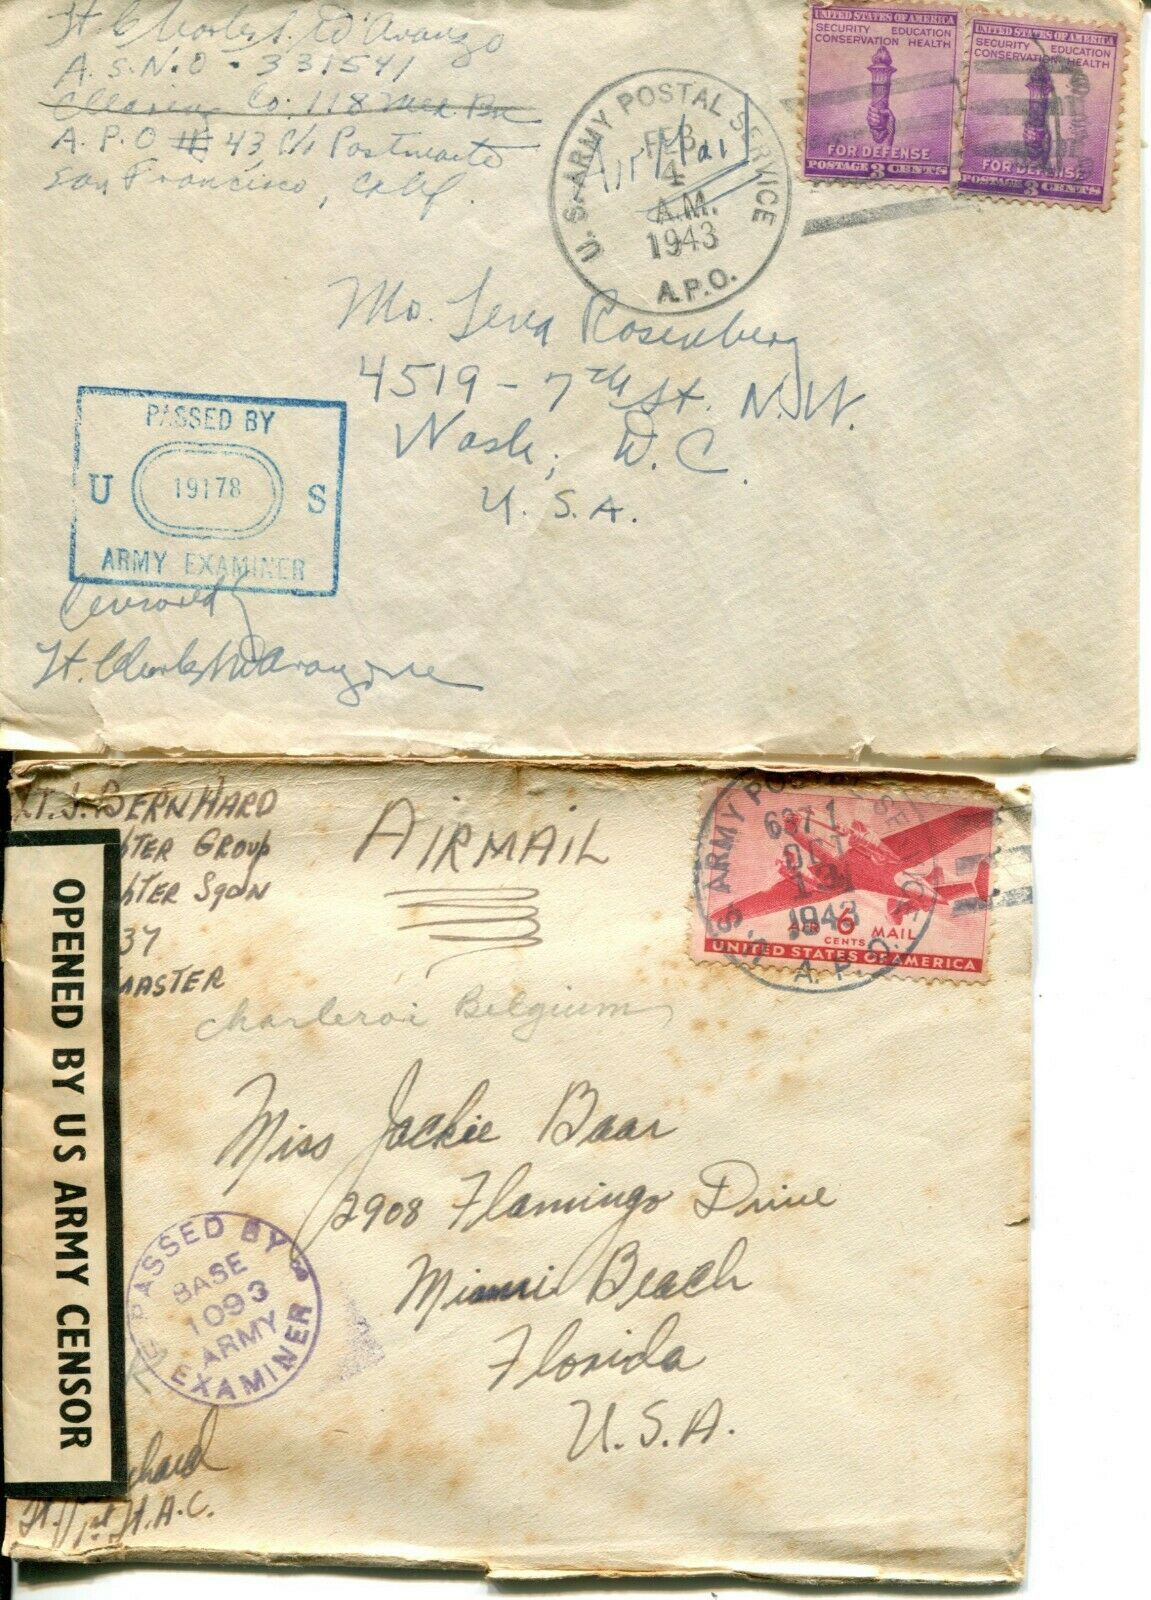 US Army Airmail WWII APO Navy Military Cover Examined Postage Collection  image 9